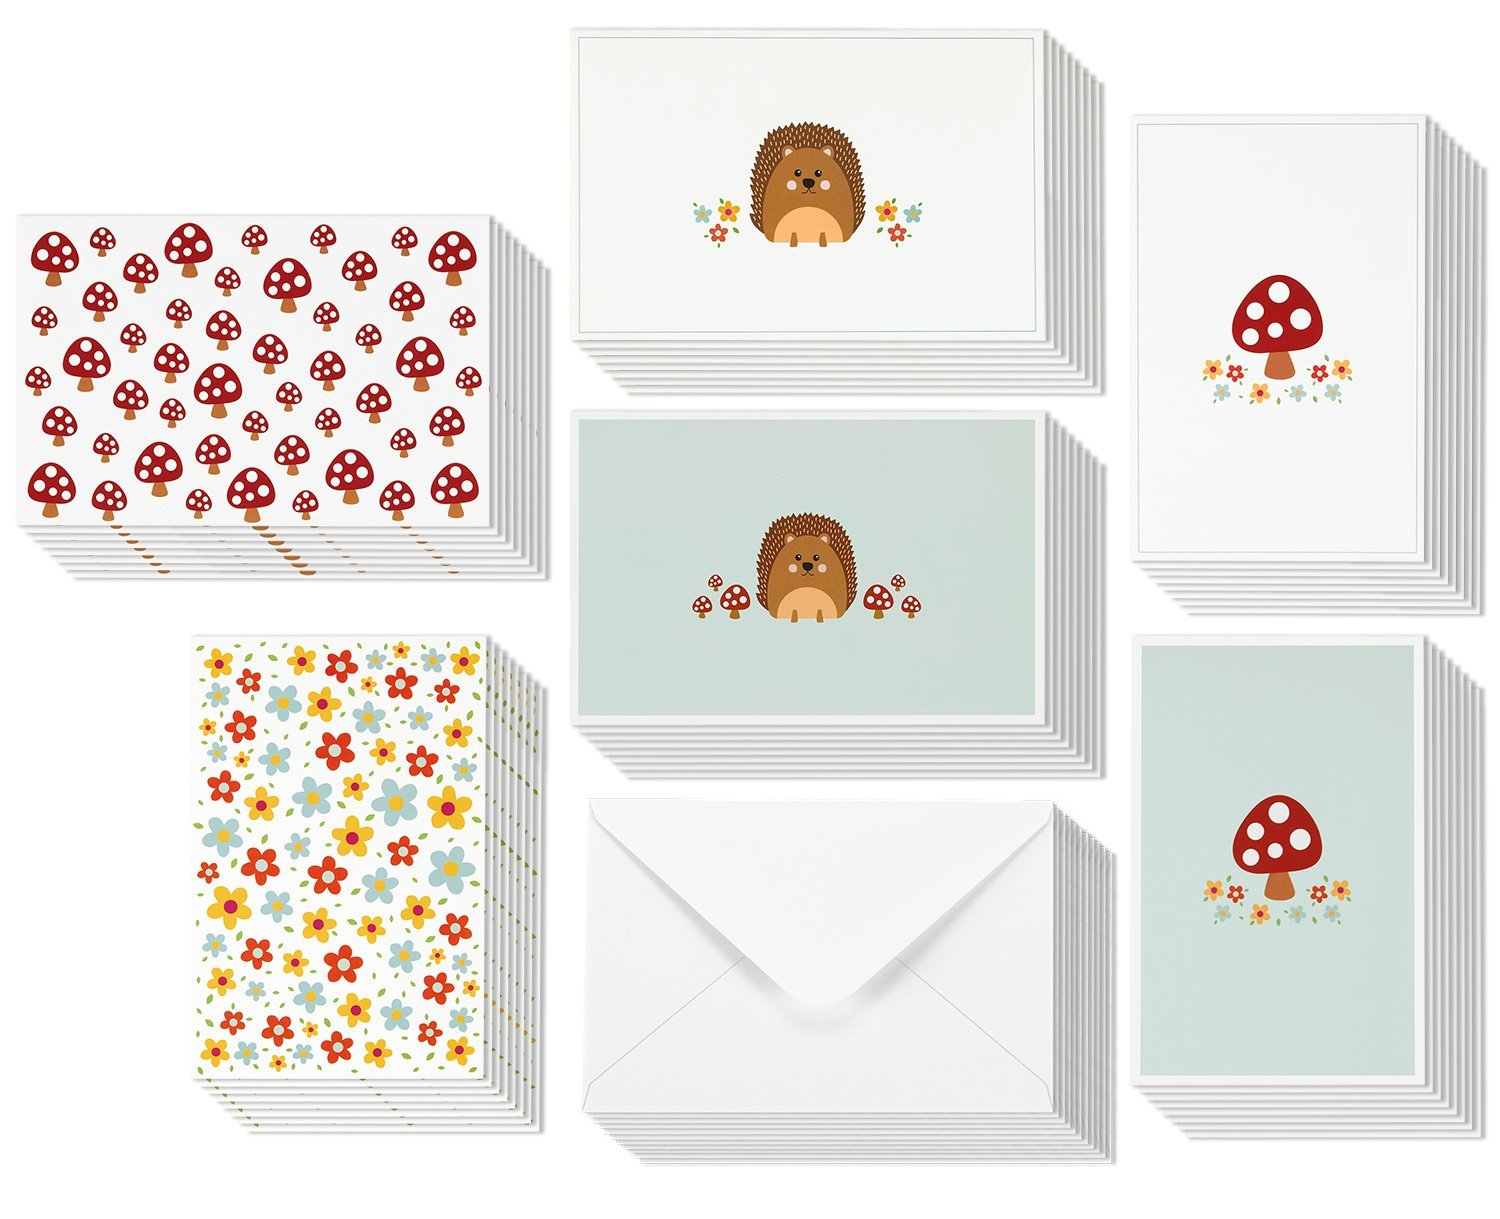 Cheap blank greeting cards find blank greeting cards deals on line all occasion greeting cards blank inside 6 cute illustrations of hedgehogs mushrooms kristyandbryce Image collections